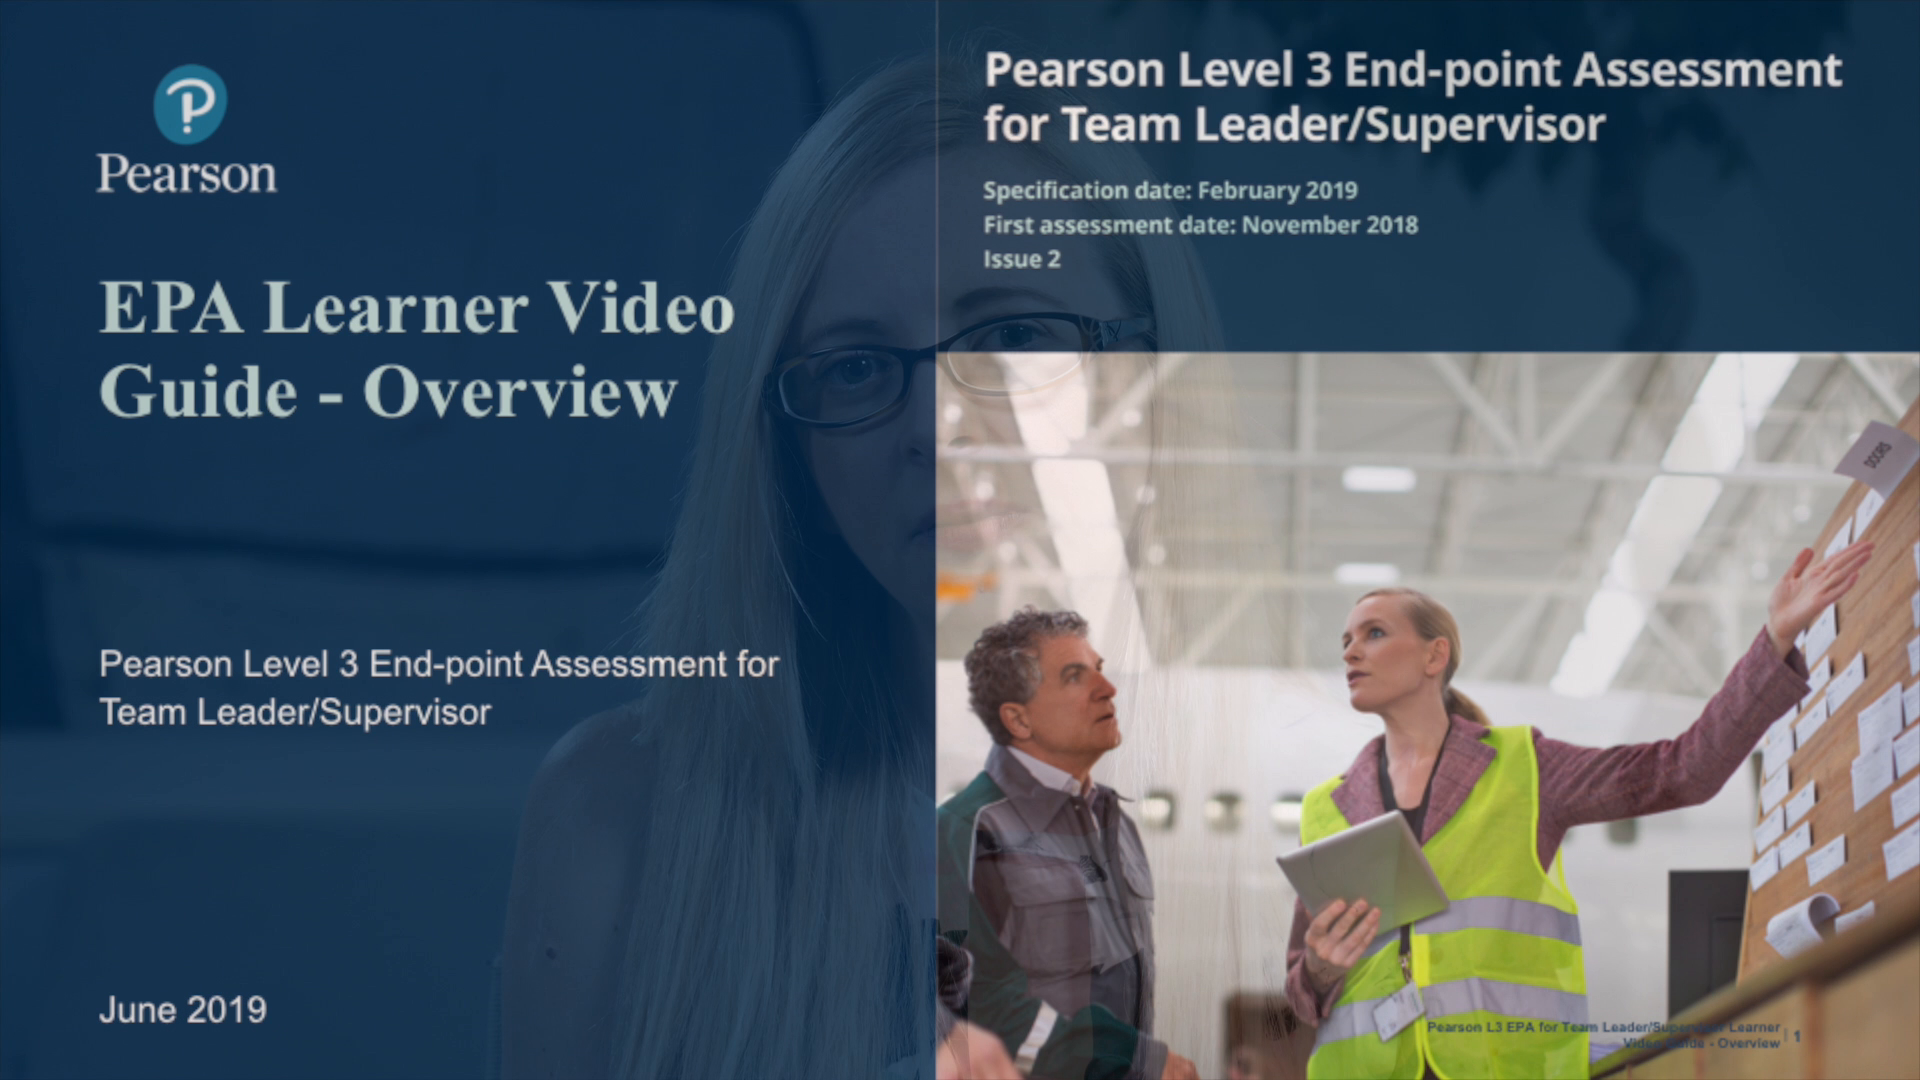 Pearson EPA Learner Video Guide: Team Leader - Overview